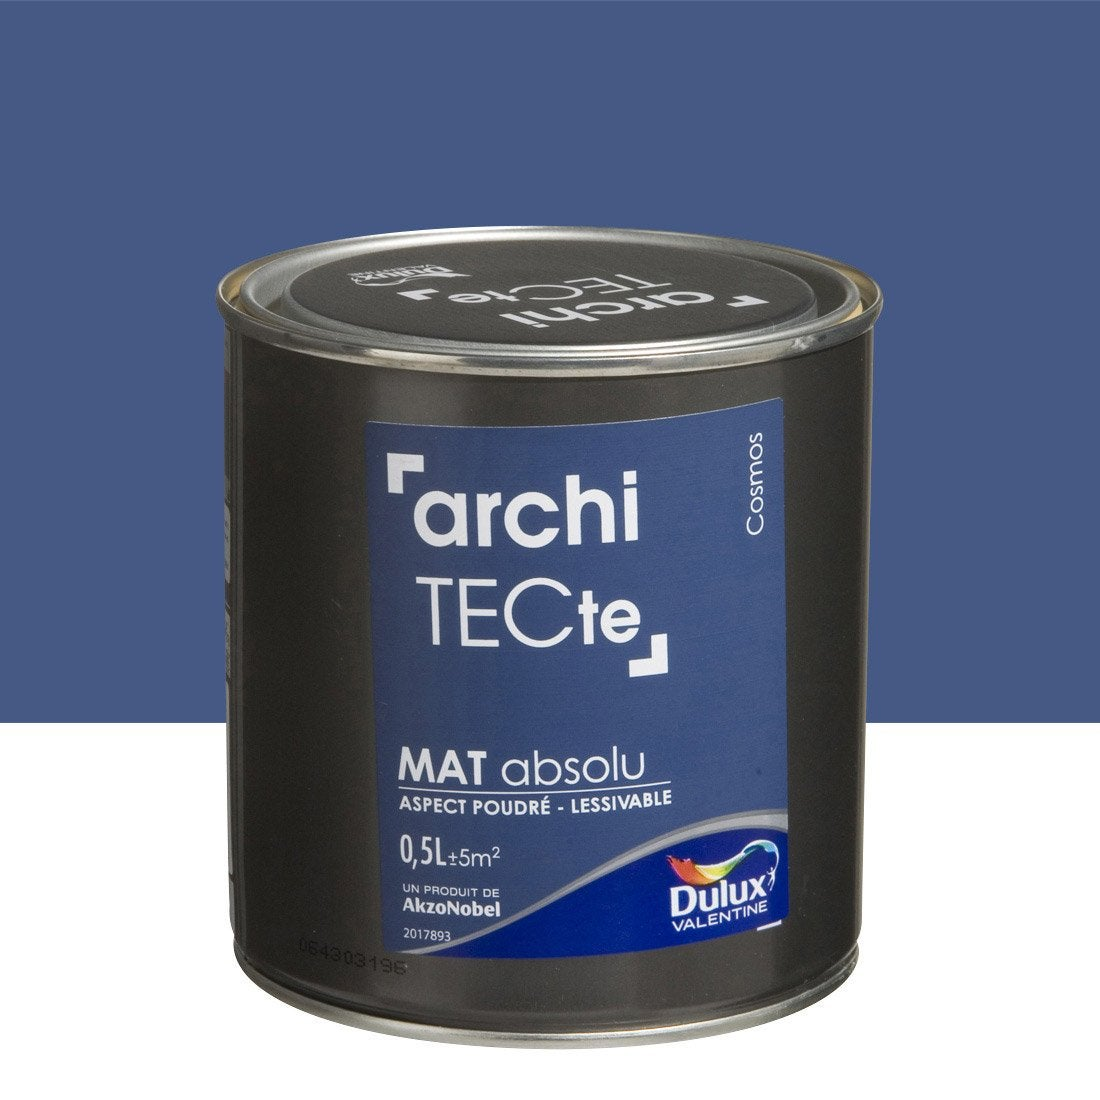 peinture multisupports architecte dulux valentine bleu cosmos 0 5 l leroy merlin. Black Bedroom Furniture Sets. Home Design Ideas